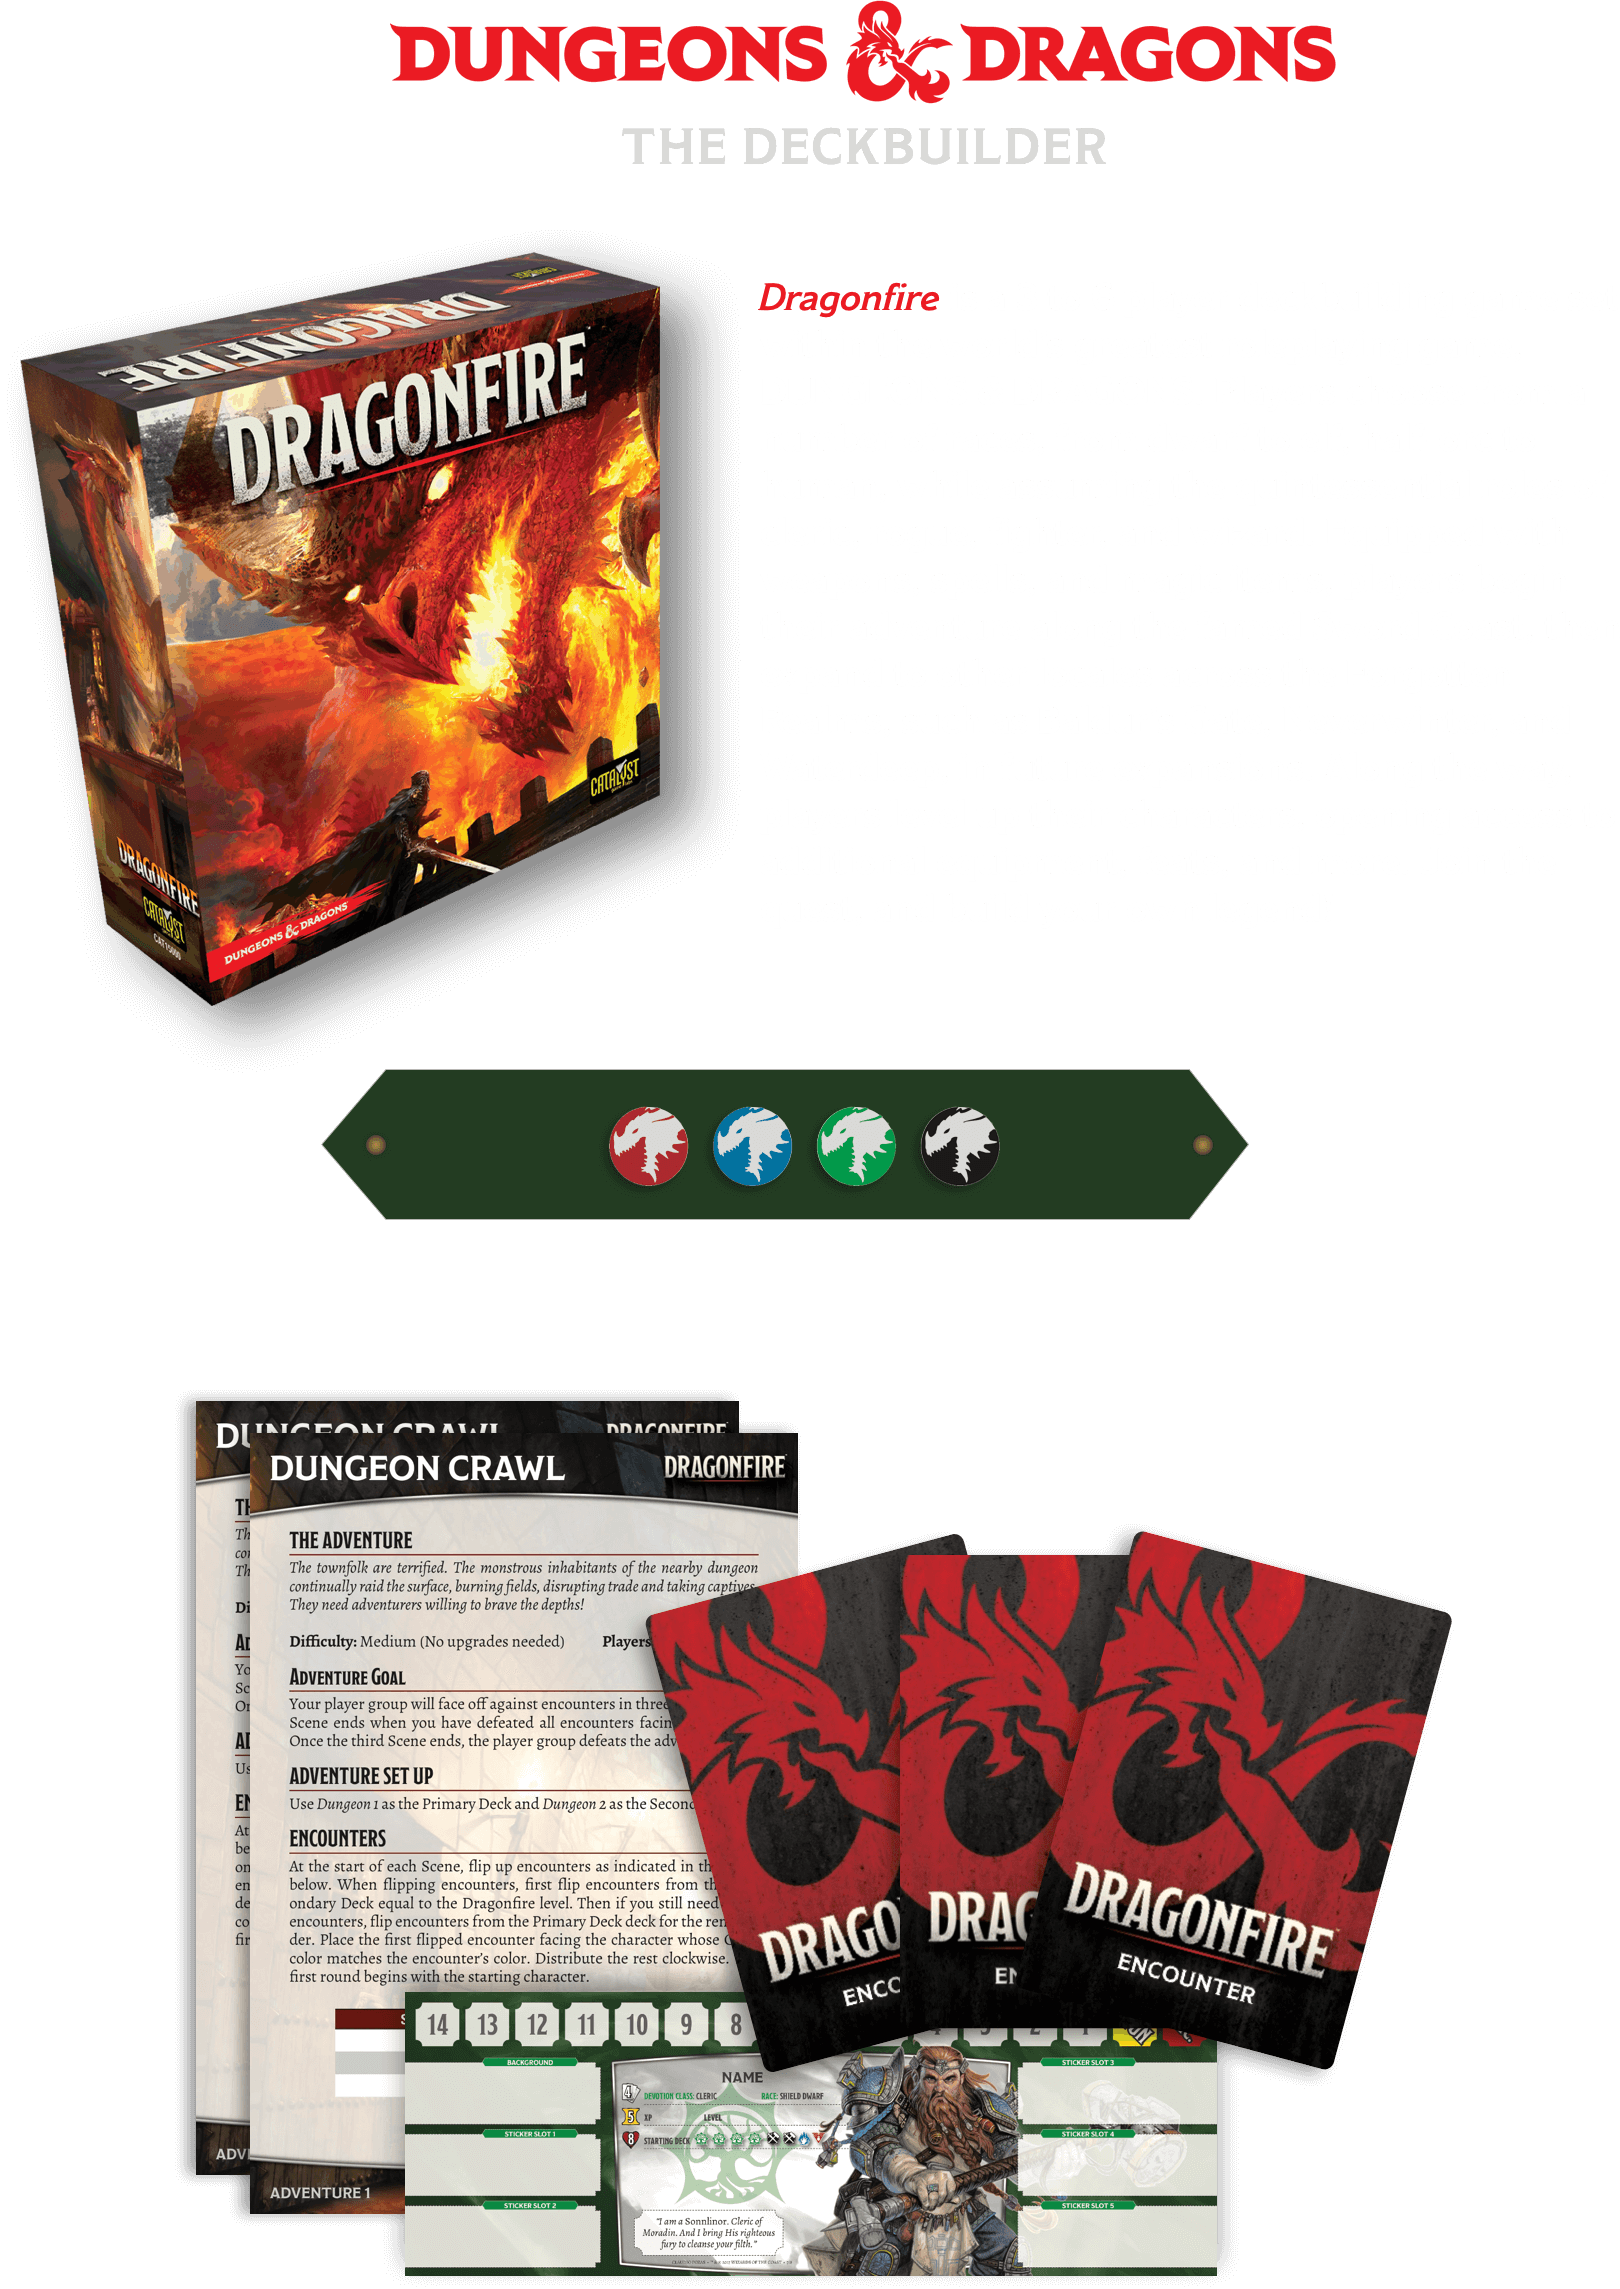 Dragonfire Deck Building Game